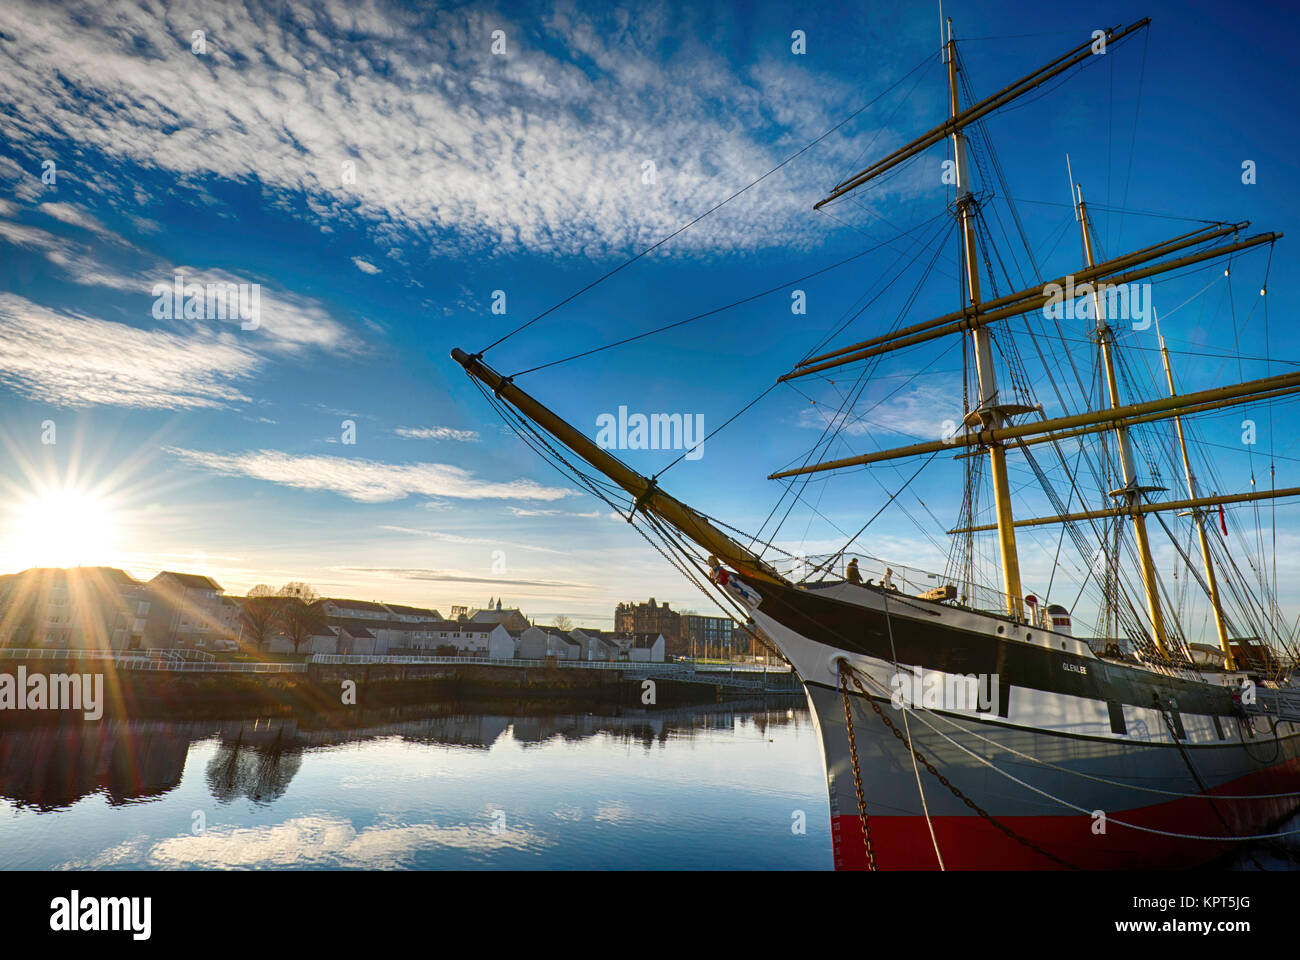 The Tall Ship at the Riverside Museum in Glasgow, Scotland, UK - Stock Image